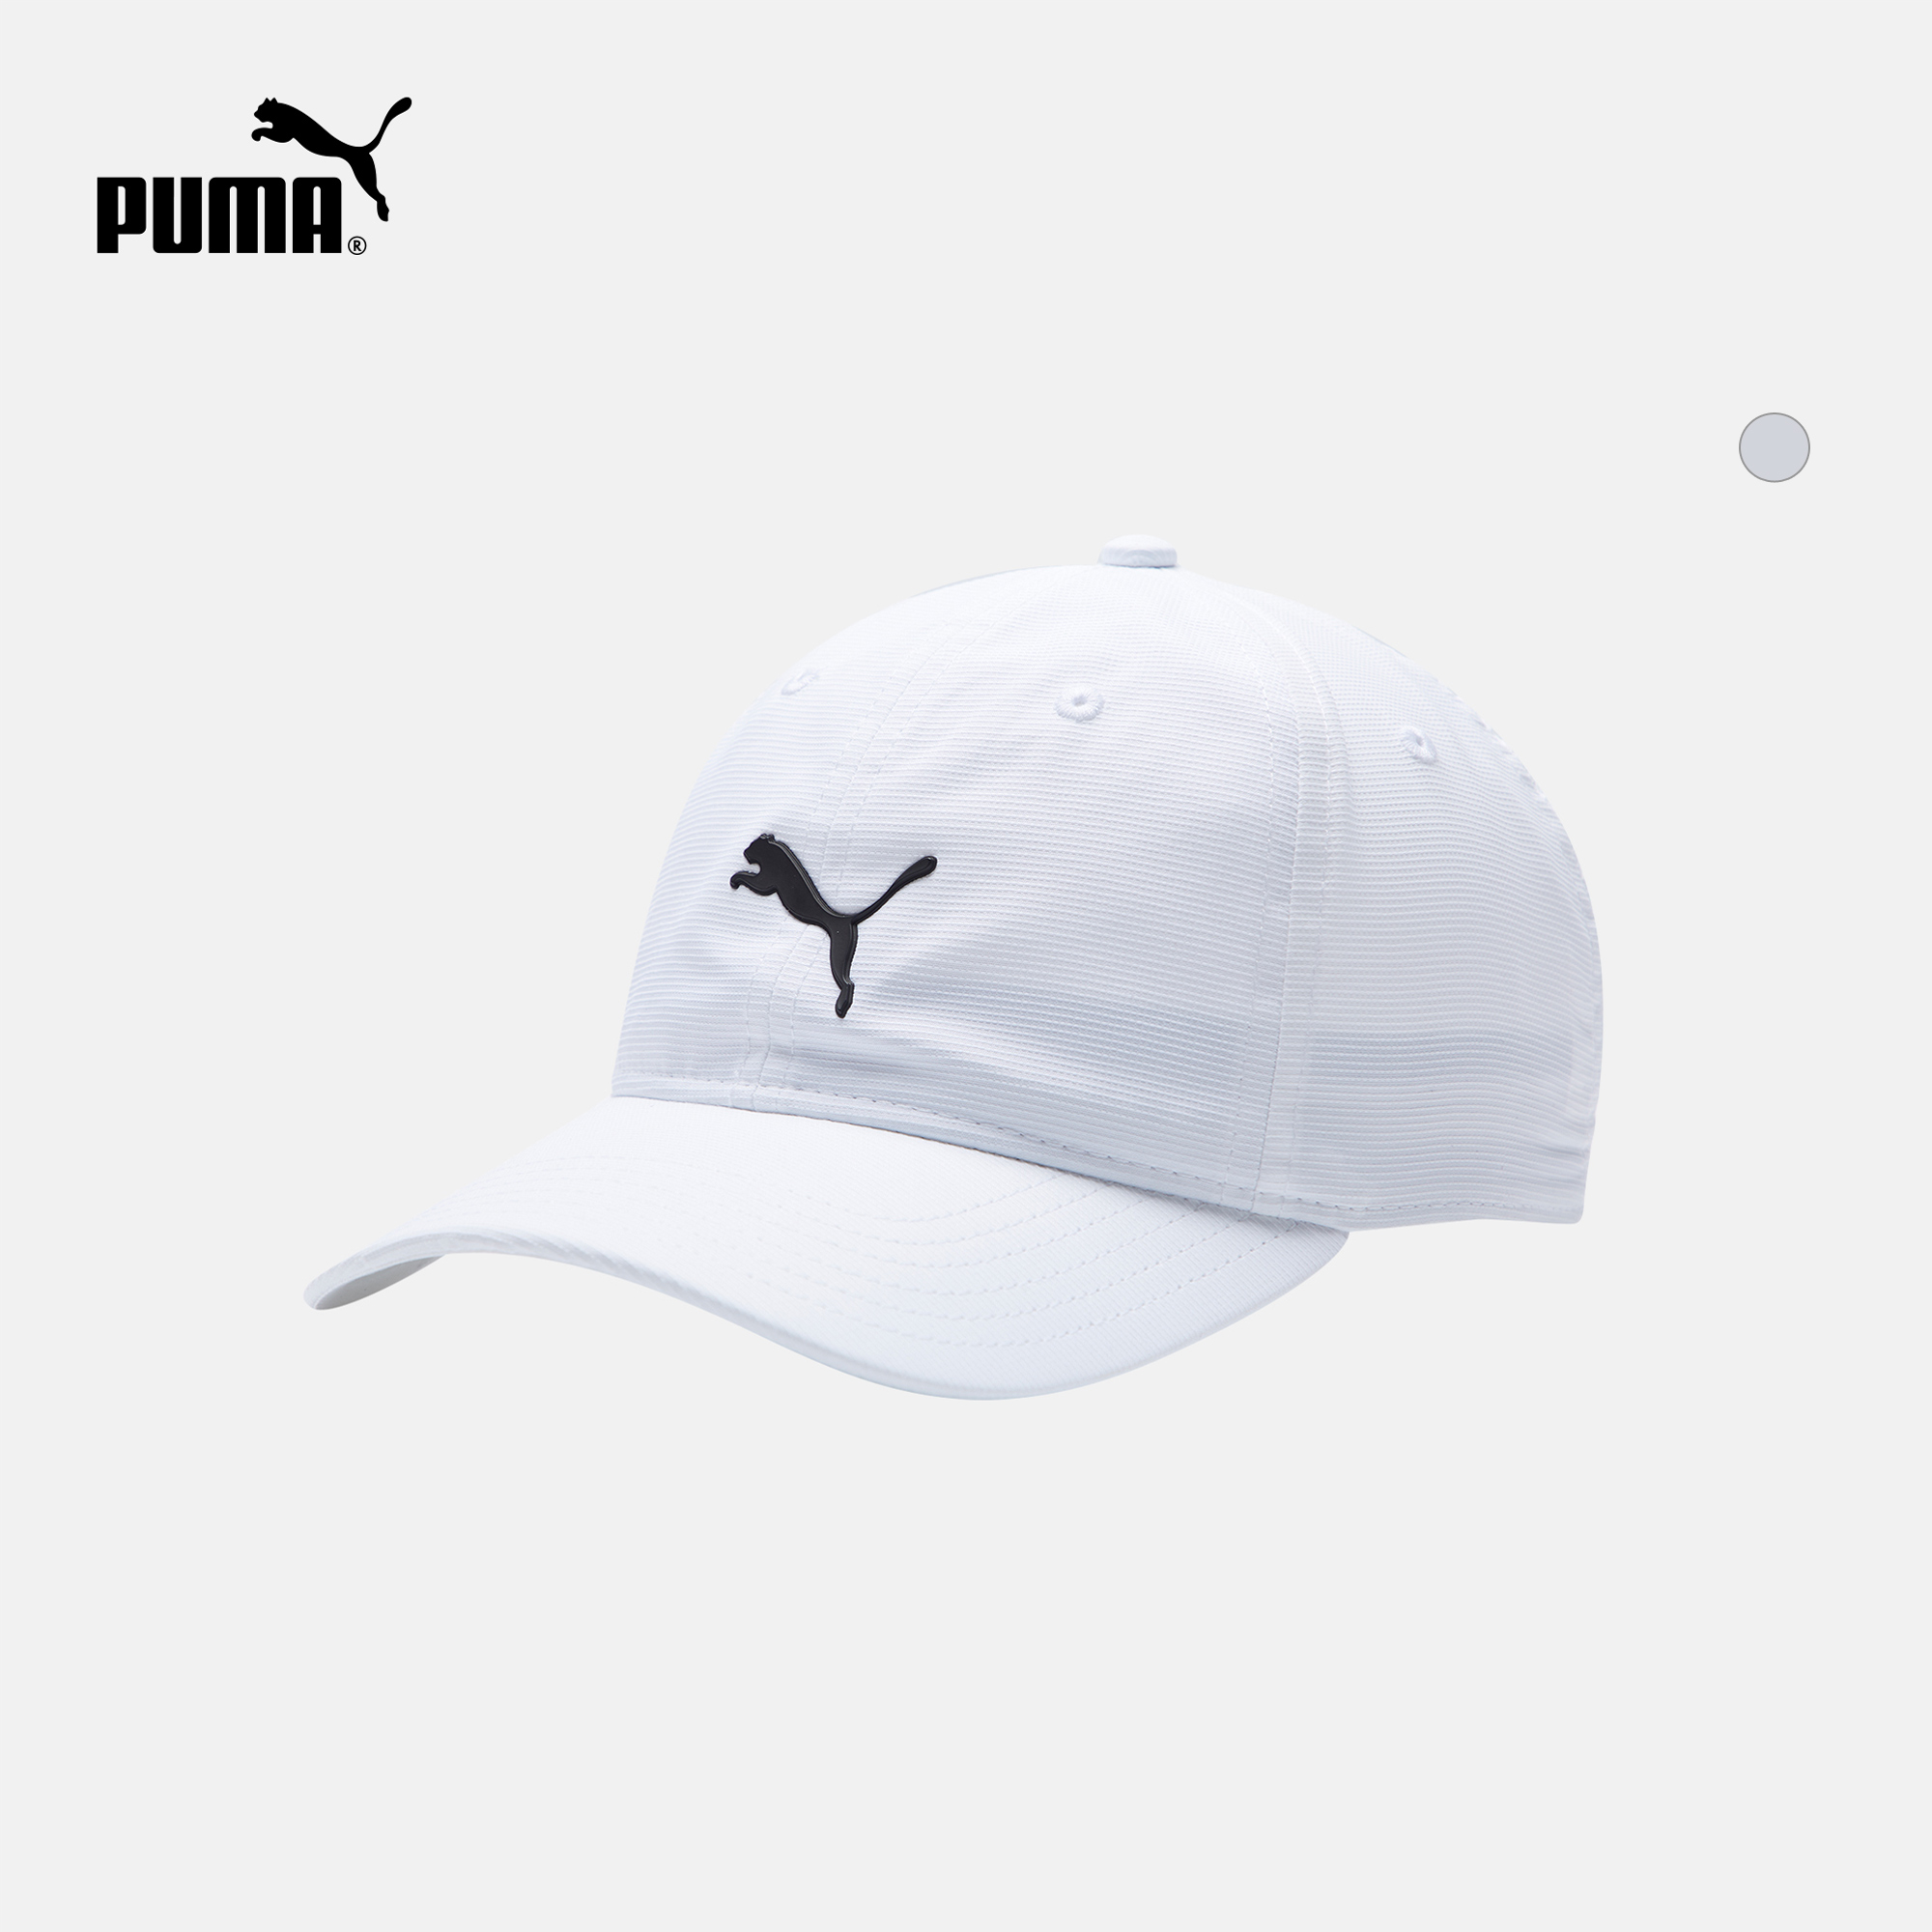 Puma puma official authentic new men's sports casual baseball cap bounce 021431